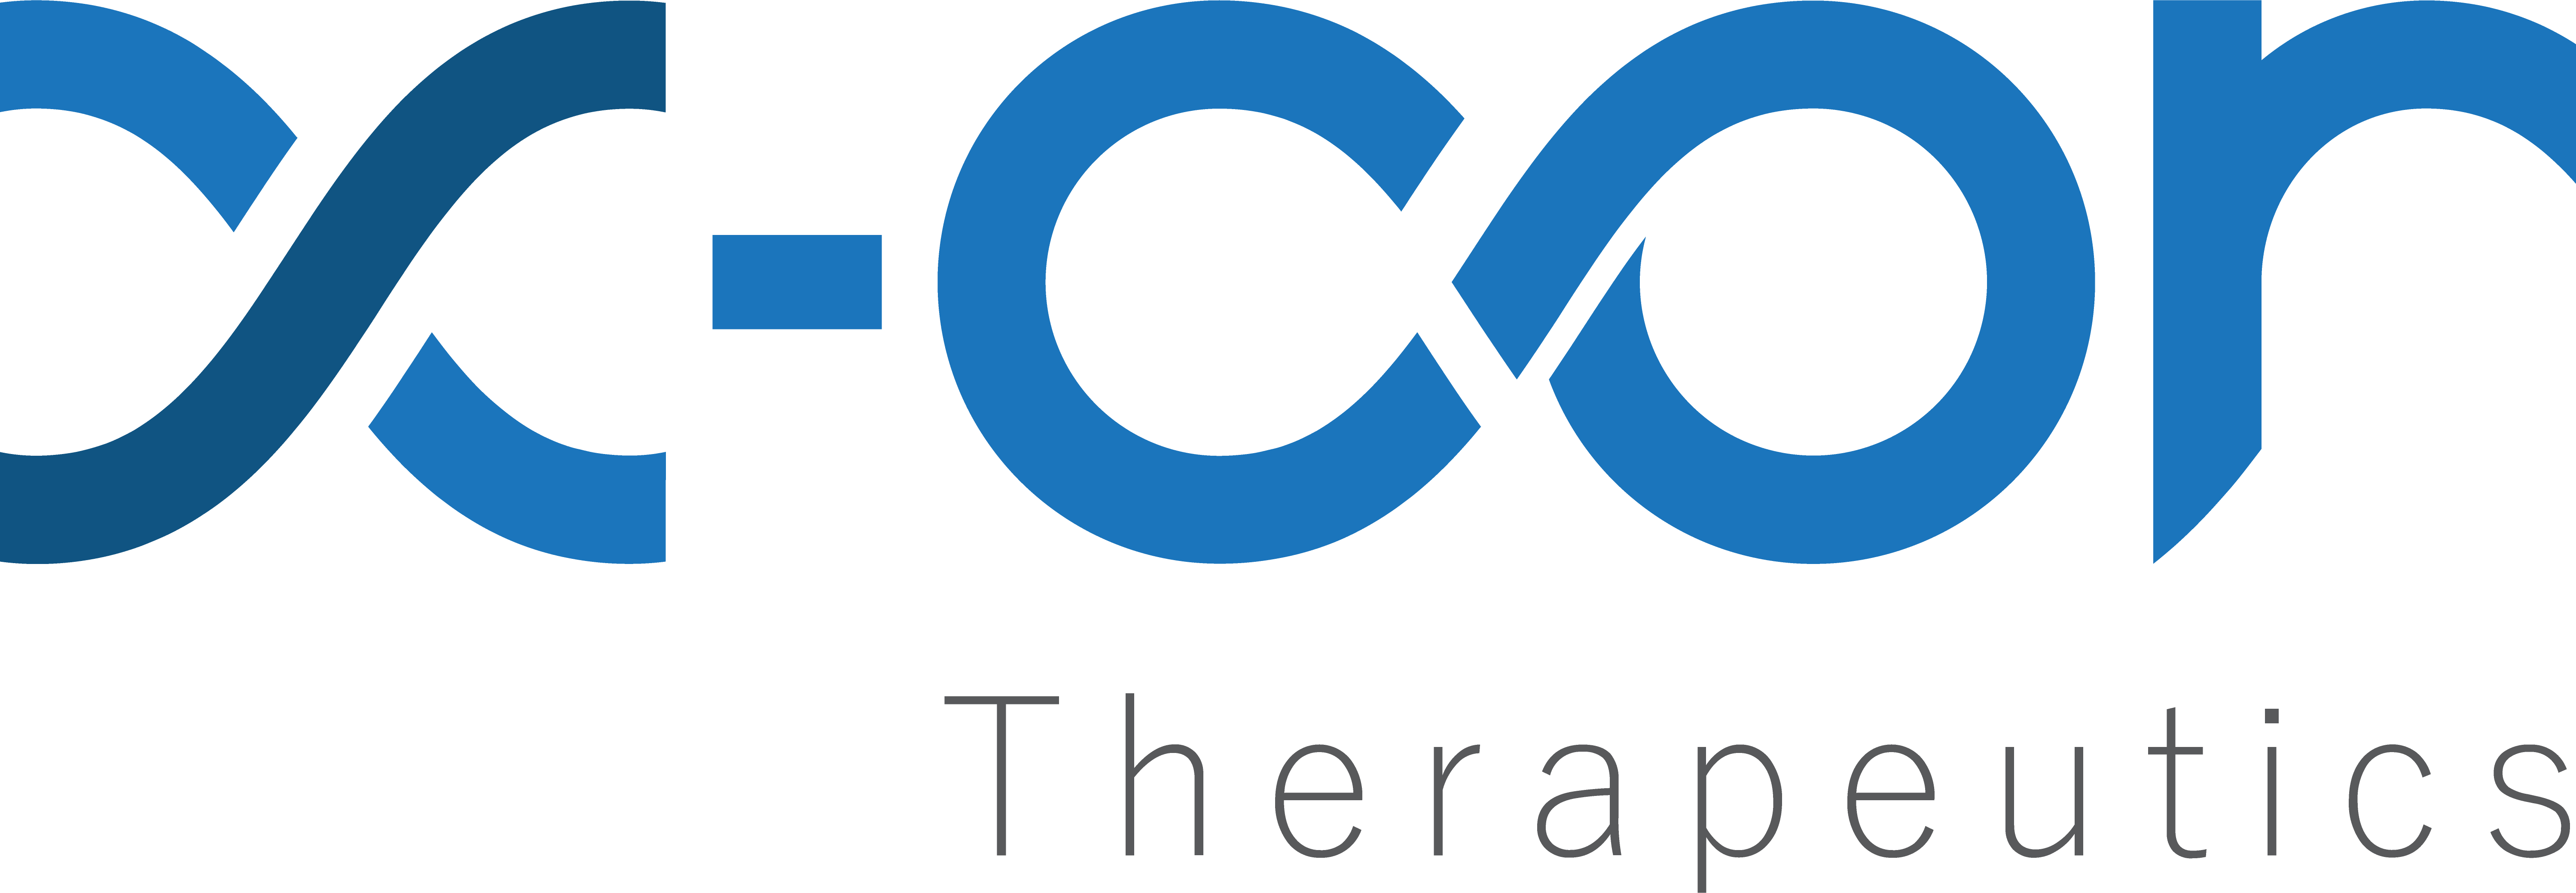 X-COR Therapeutics